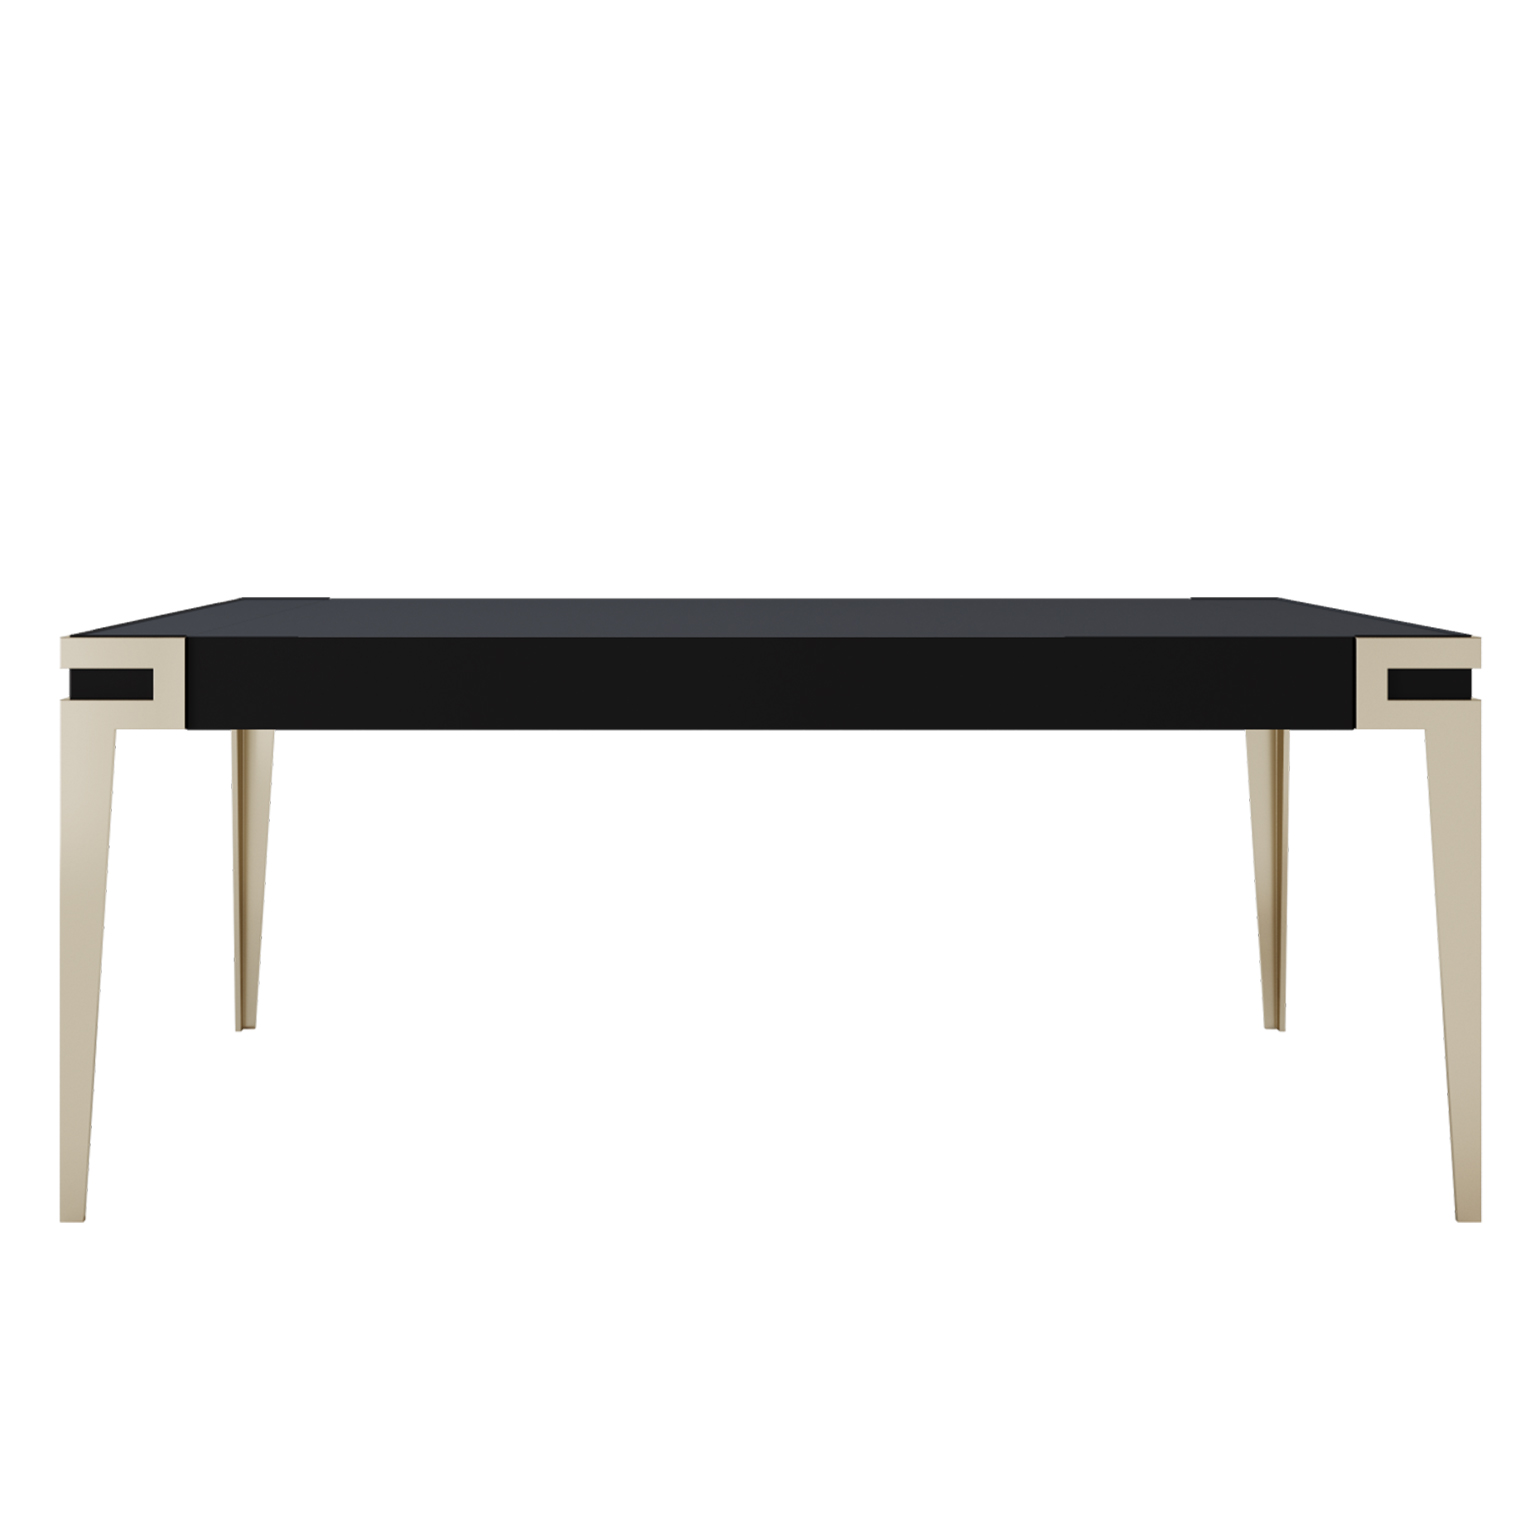 Black Lacquer Dining table in high gloss with smoke brass legs